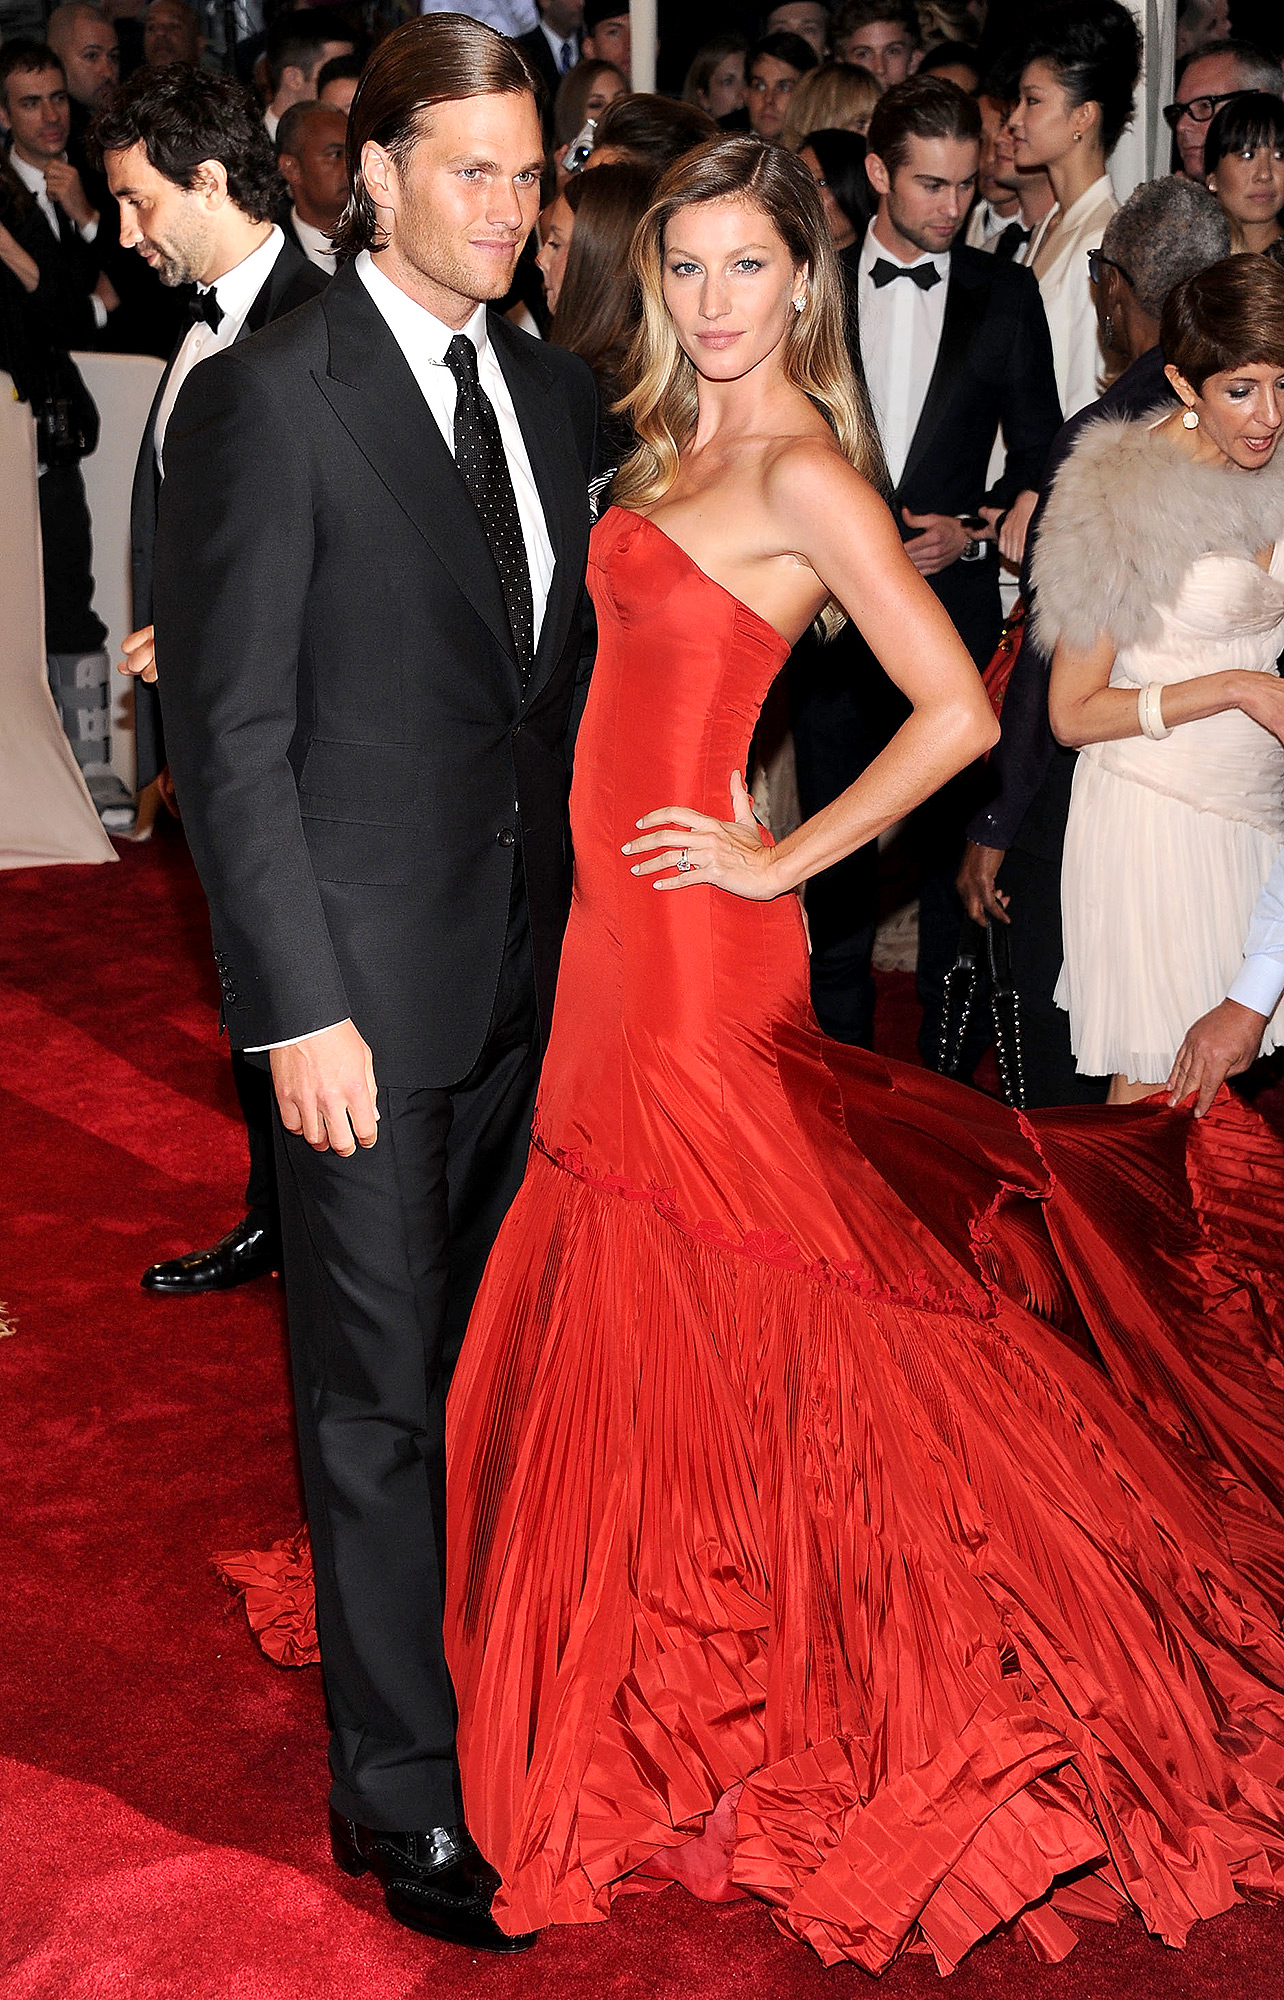 """NFL Player Tom Brady and model Gisele Bundchen attends the """"Alexander McQueen: Savage Beauty"""" Costume Institute Gala at The Metropolitan Museum of Art on May 2, 2011 in New York City. (Photo by Dimitrios Kambouris/FilmMagic)"""